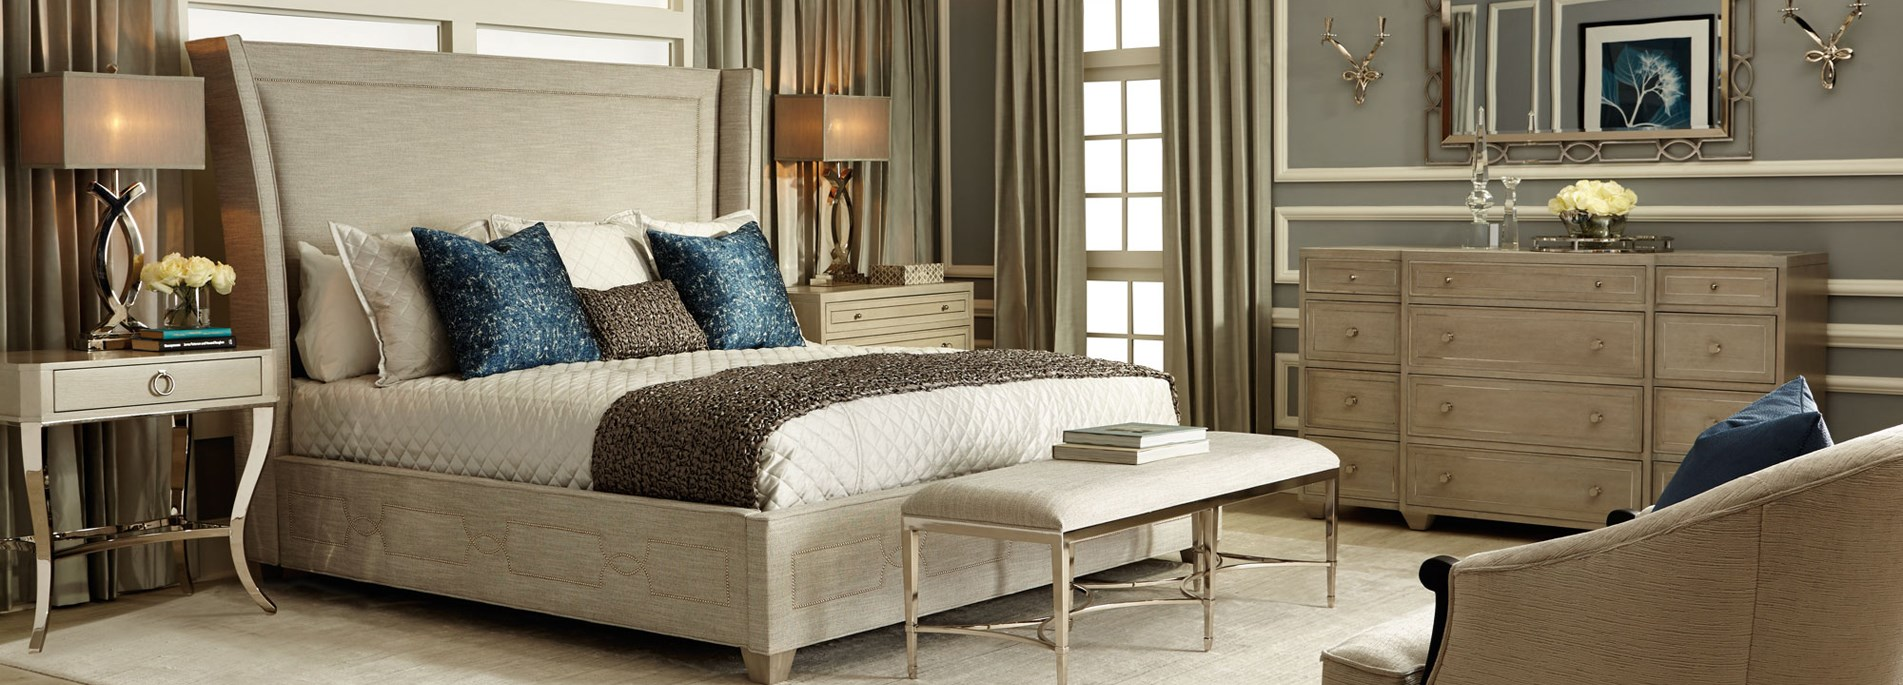 Florida's Premier Bedroom Furniture Store